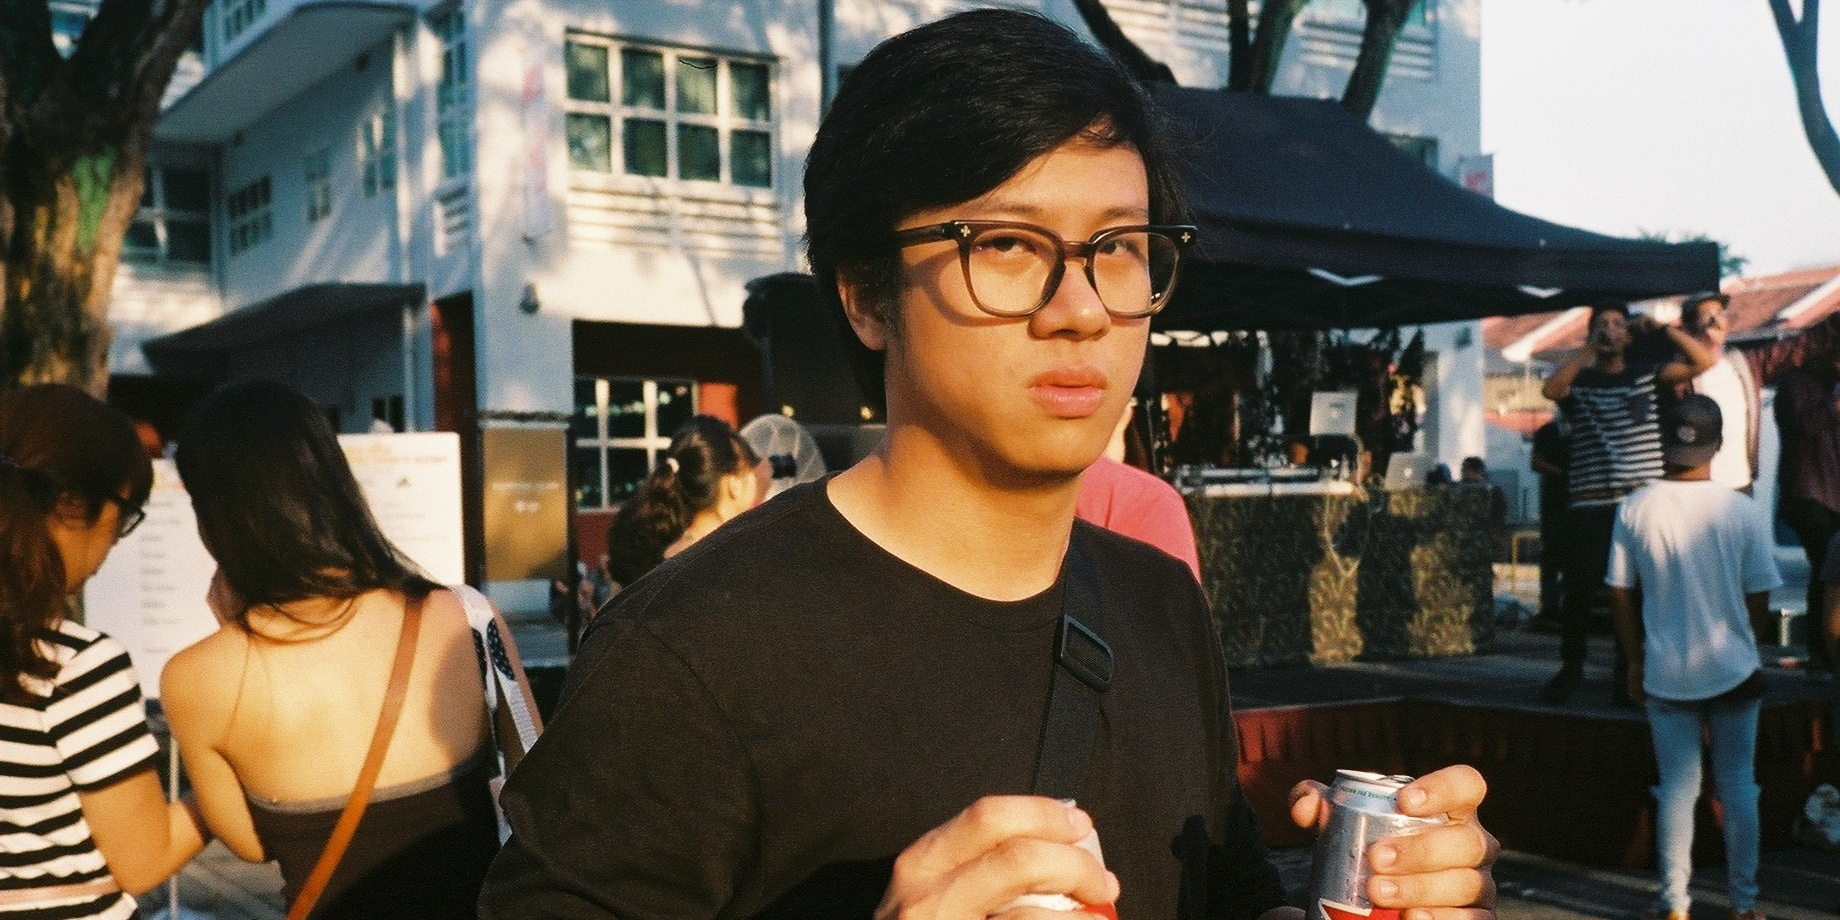 5 Records I Want For Record Store Day, according to Stopgap's Calvin Joseph Phua